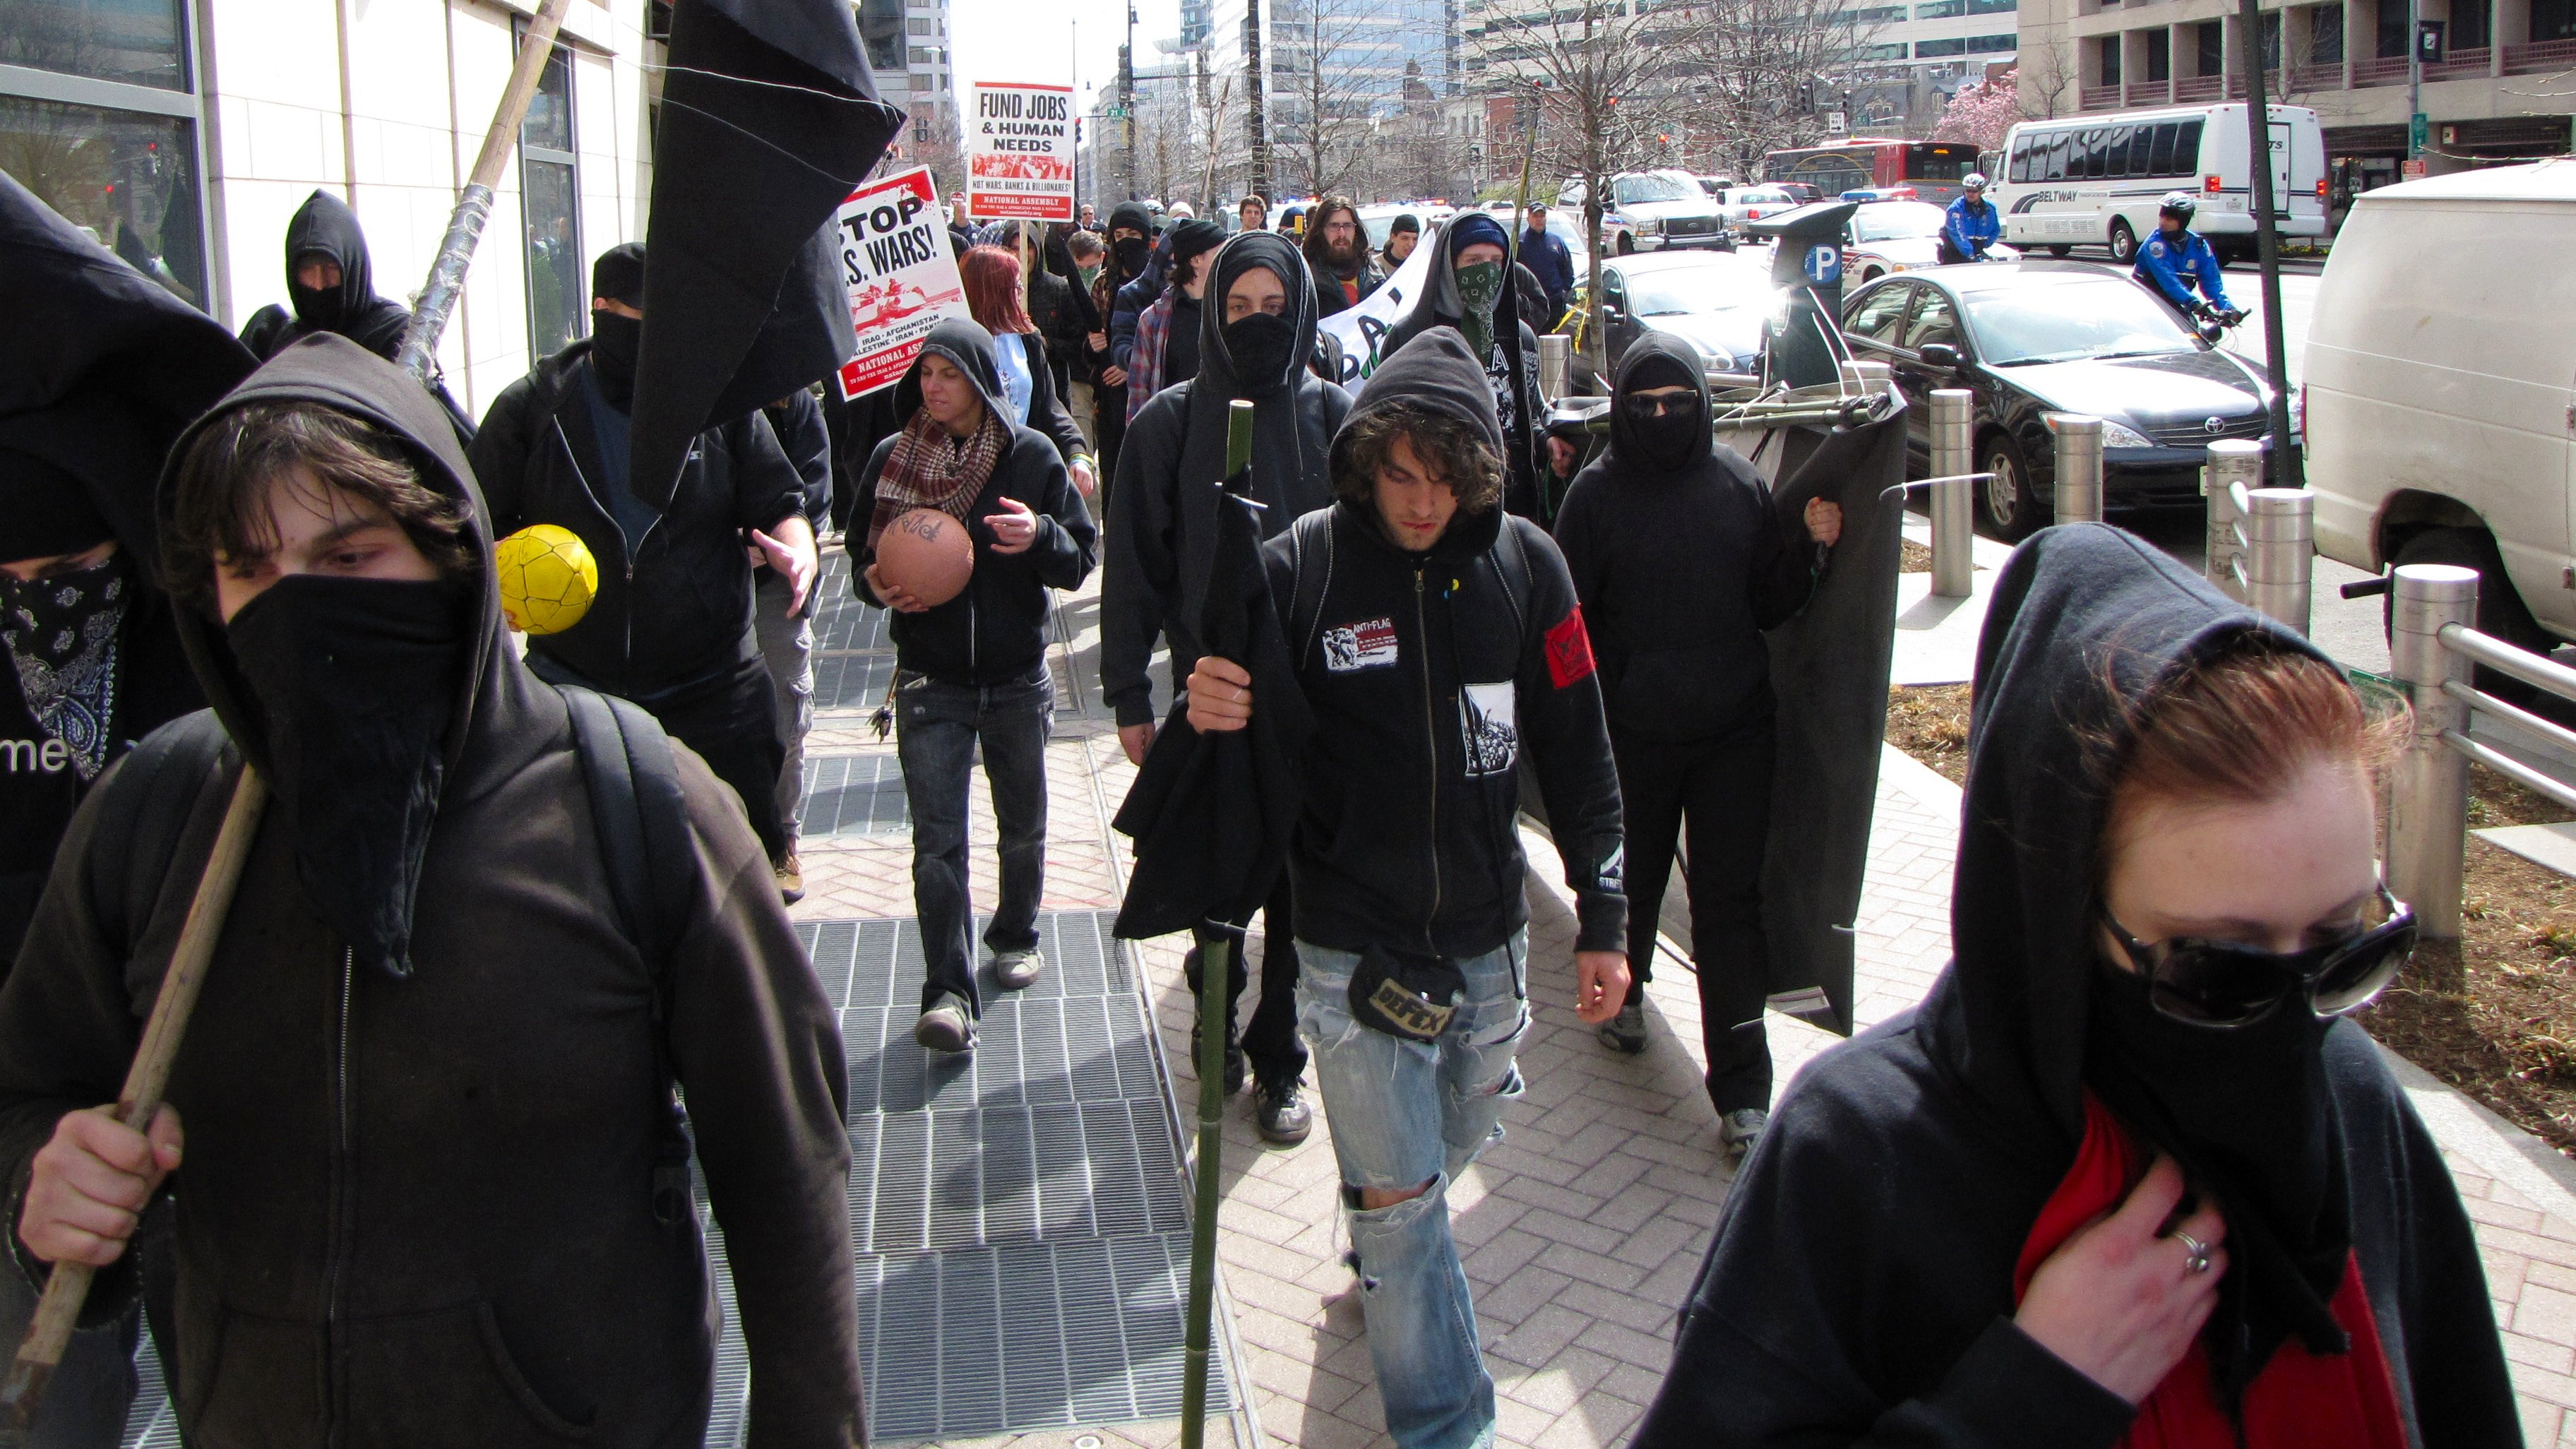 Black bloc Wikipedia